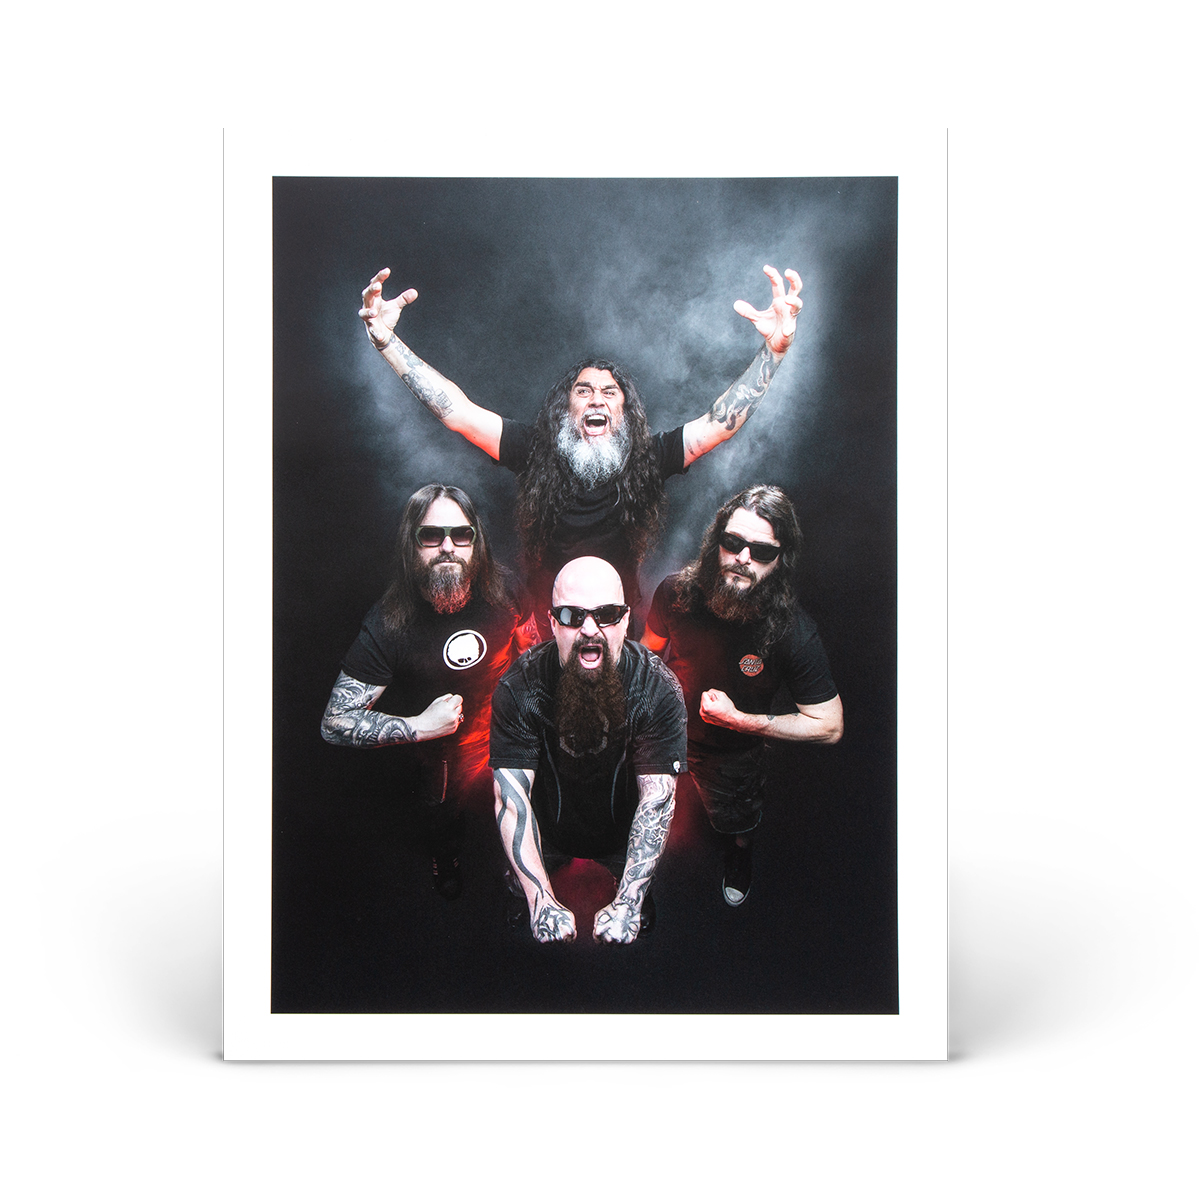 Slayer Photo Print by Jimmy Hubbard - Only 100 Available!